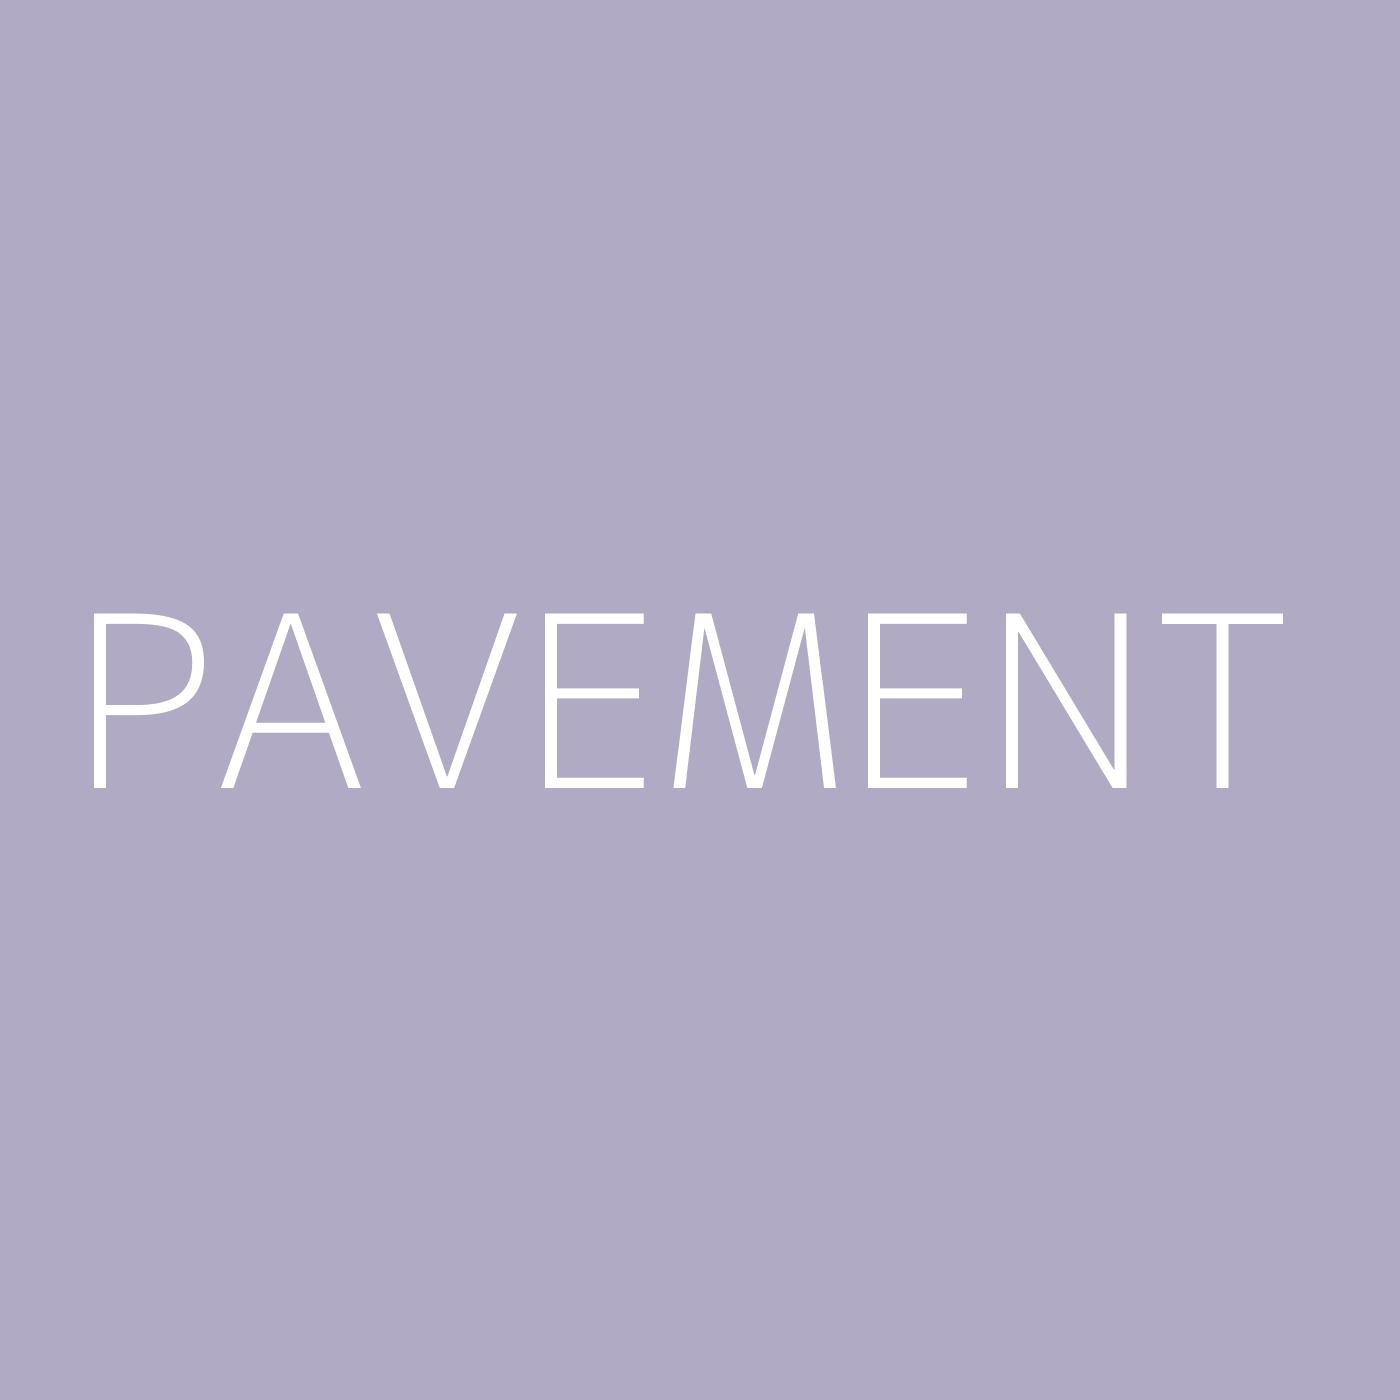 Pavement Playlist Artwork